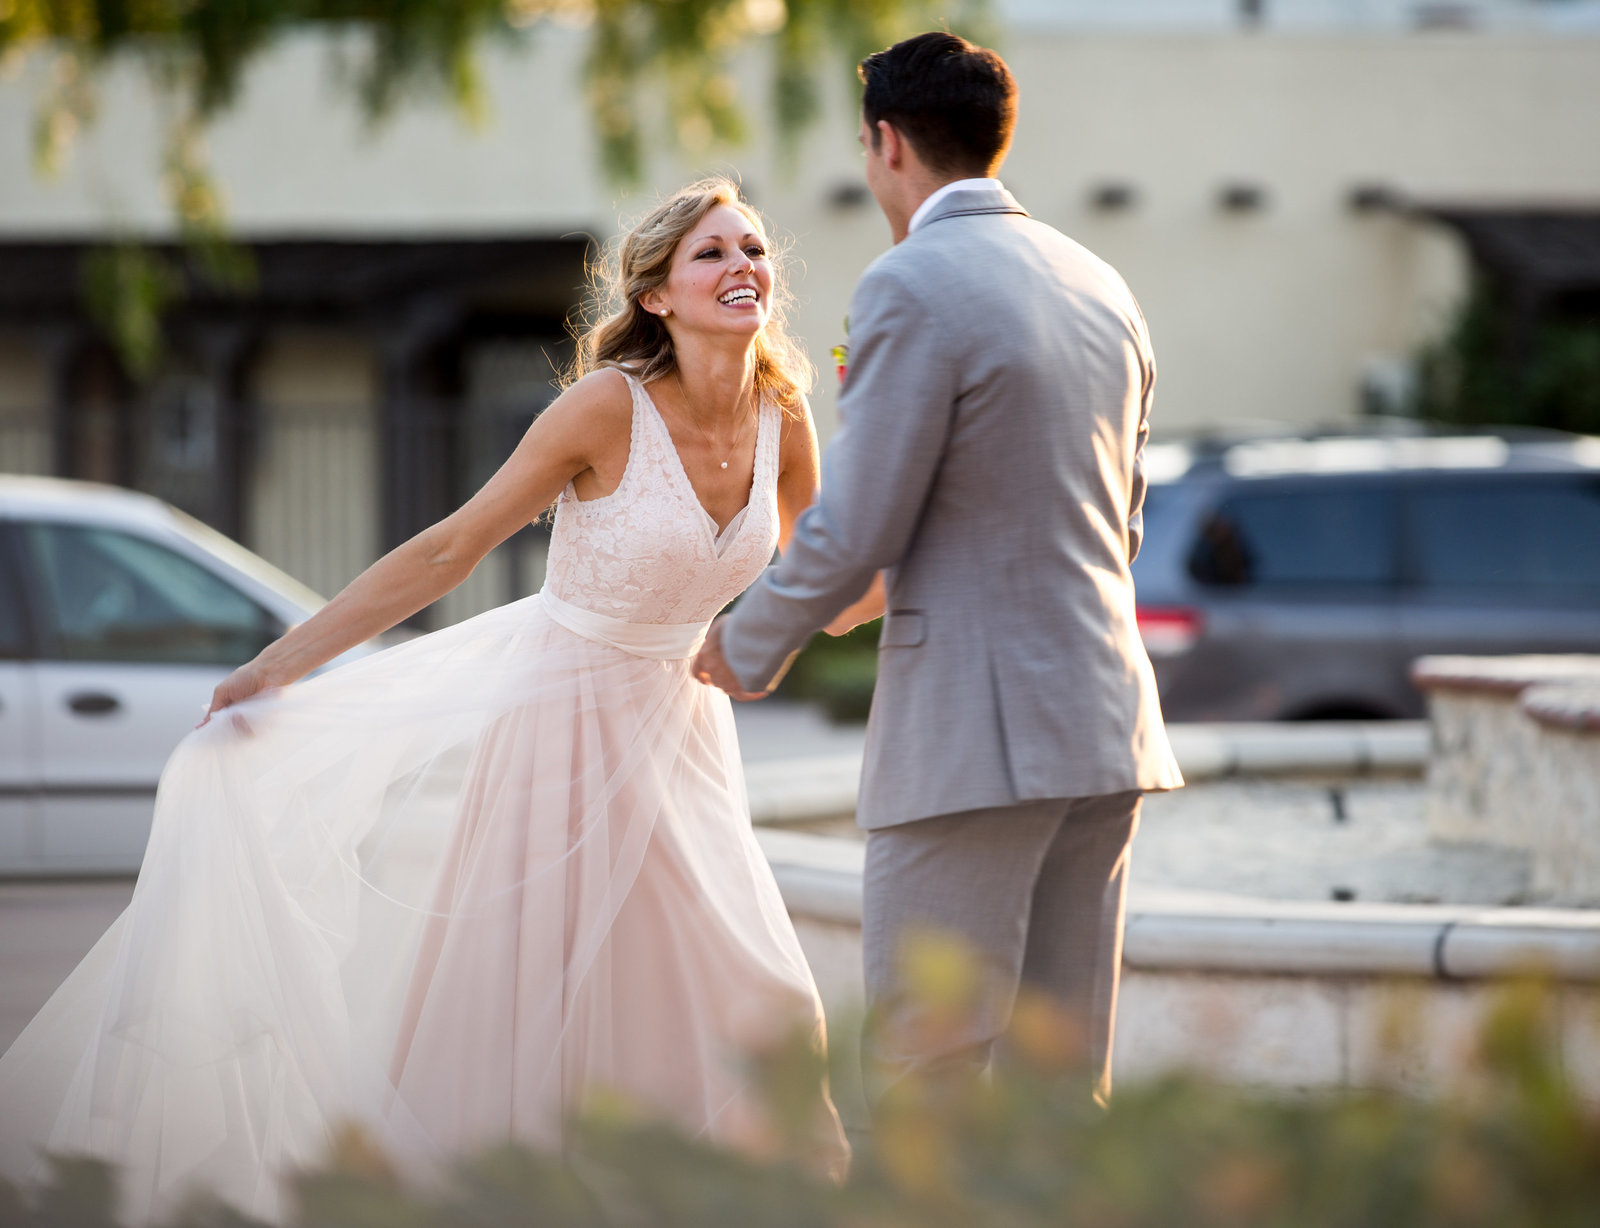 bride and groom dancing together at grapevine arbor in san gabriel